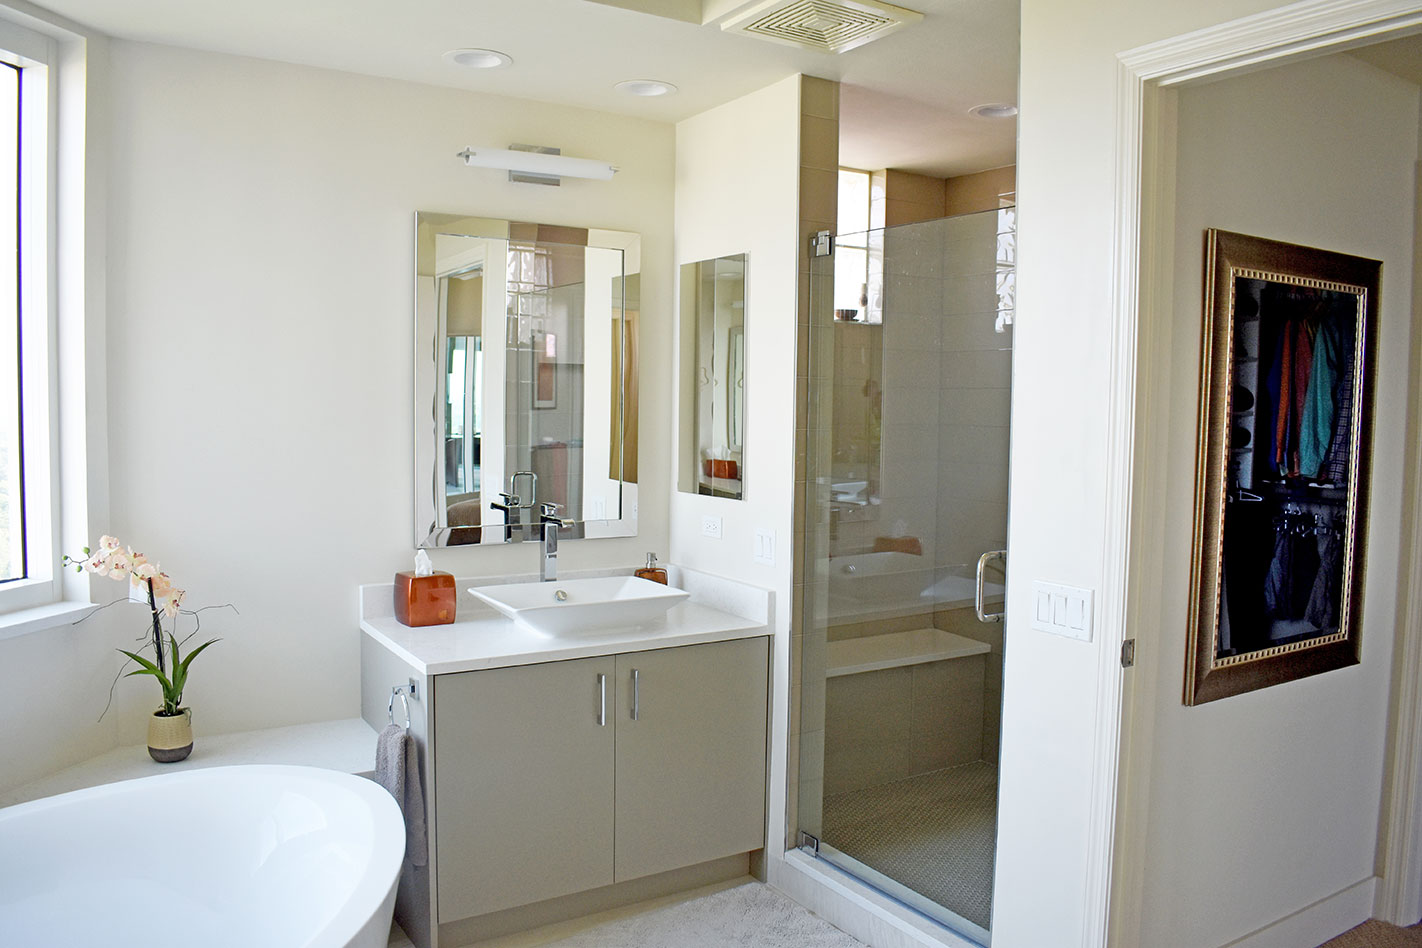 Luxurious master bathroom with natural light